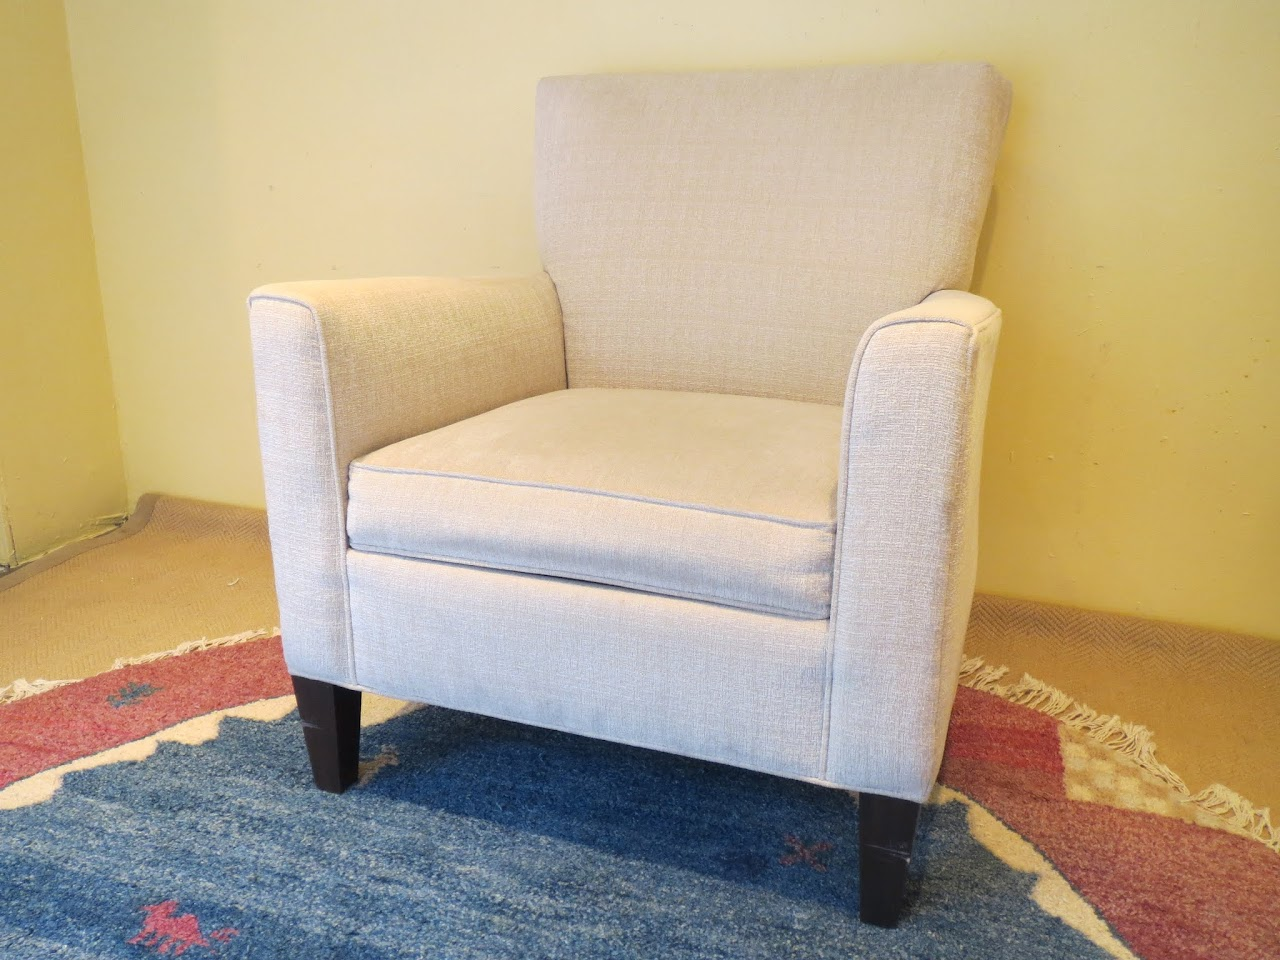 Ethan Allen Club Chairs Ethan Allen Club Chair 1 Shophousingworks